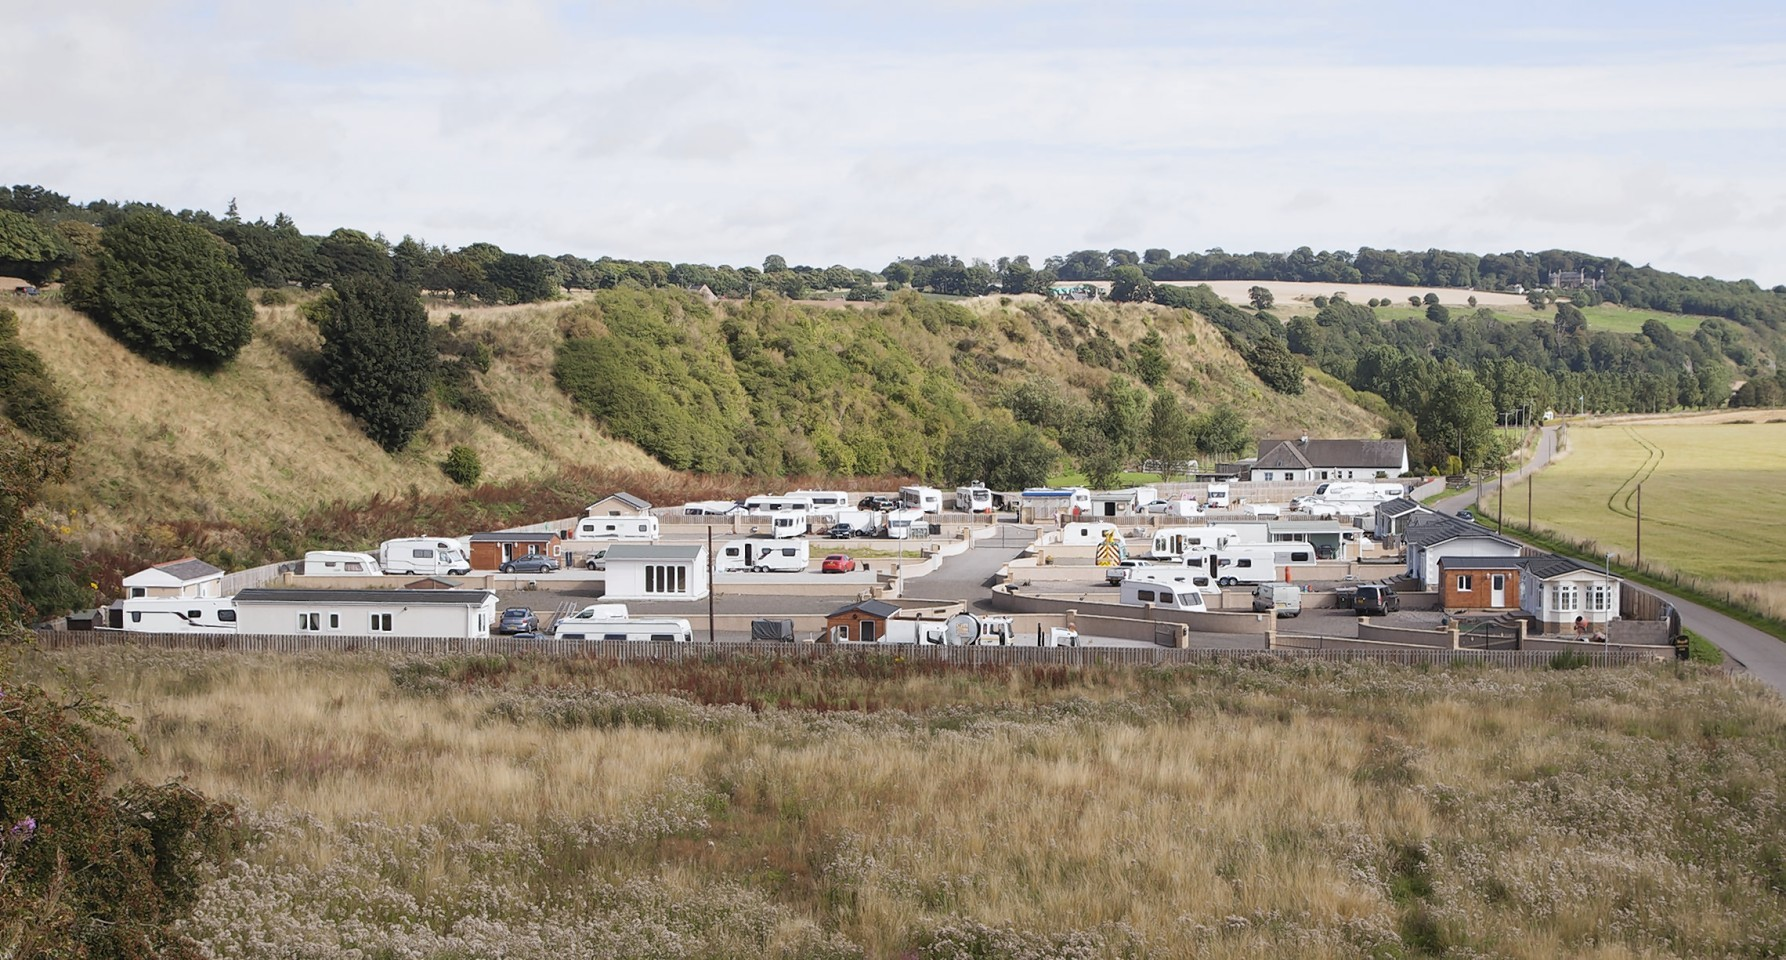 Travellers at St Cyrus given three months notice